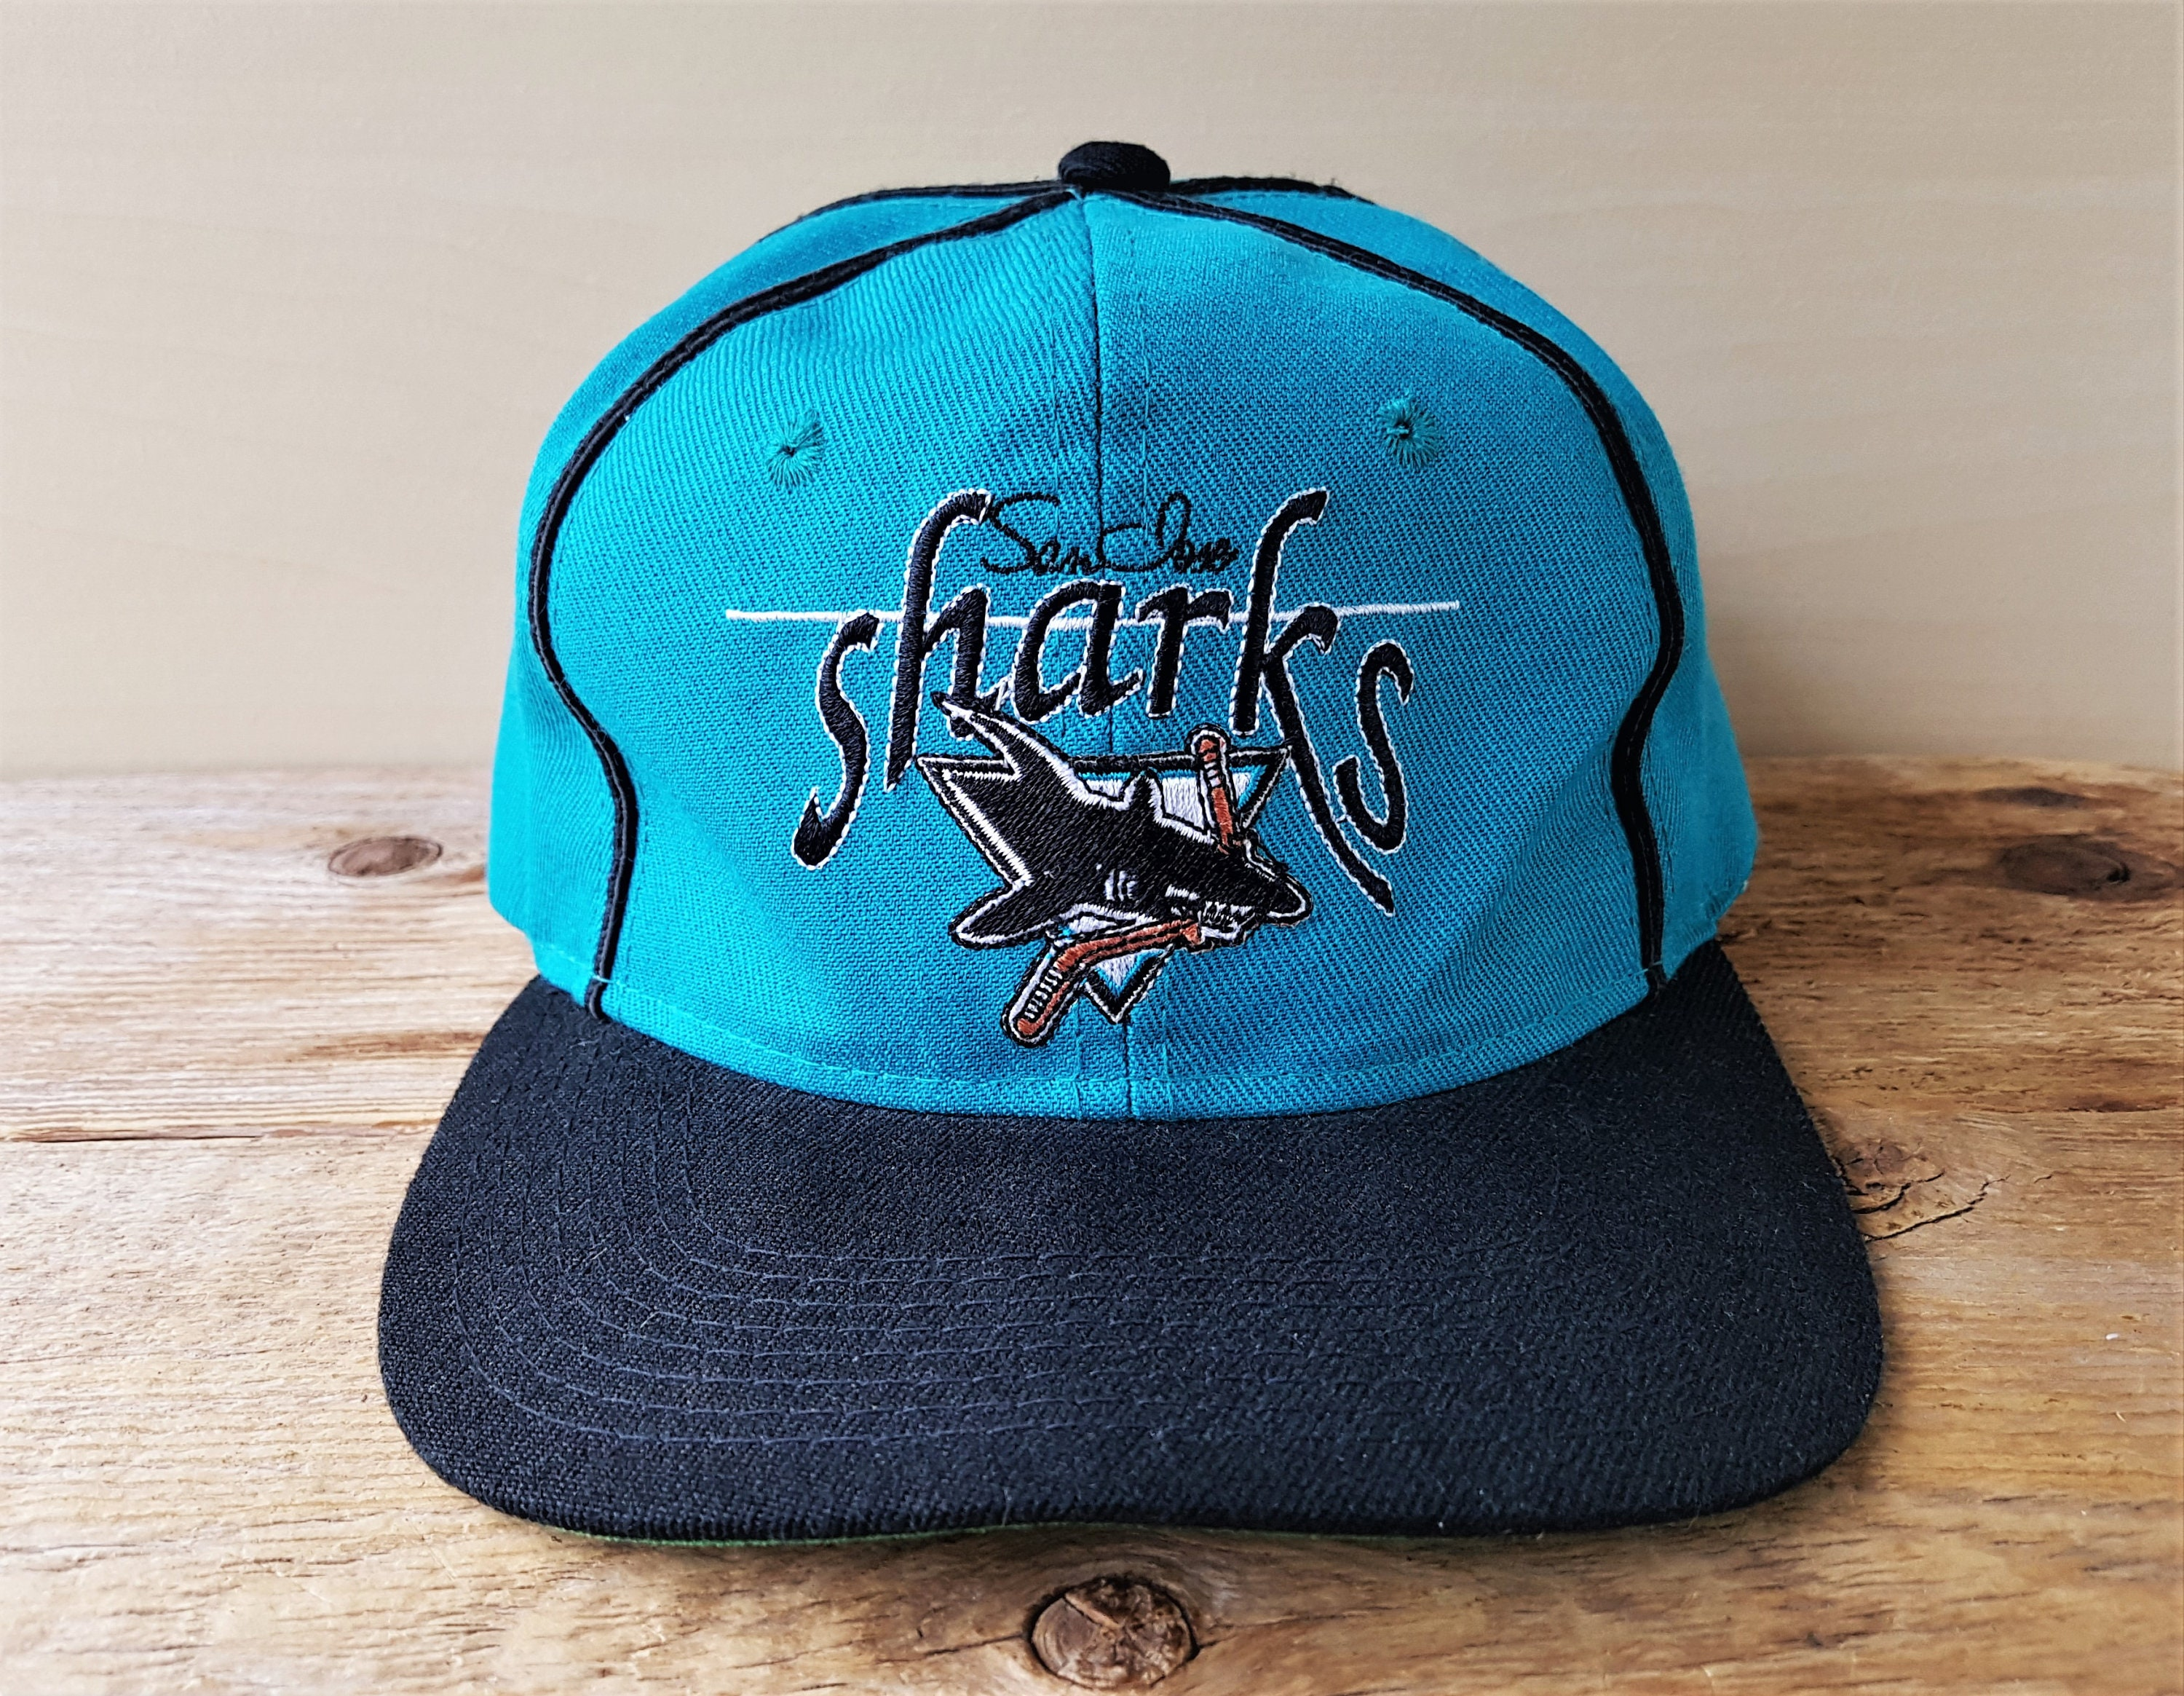 72d83b2a6a9 ... cheap san jose sharks vintage 90s snapback hat the game official etsy  7ce01 bdcc4